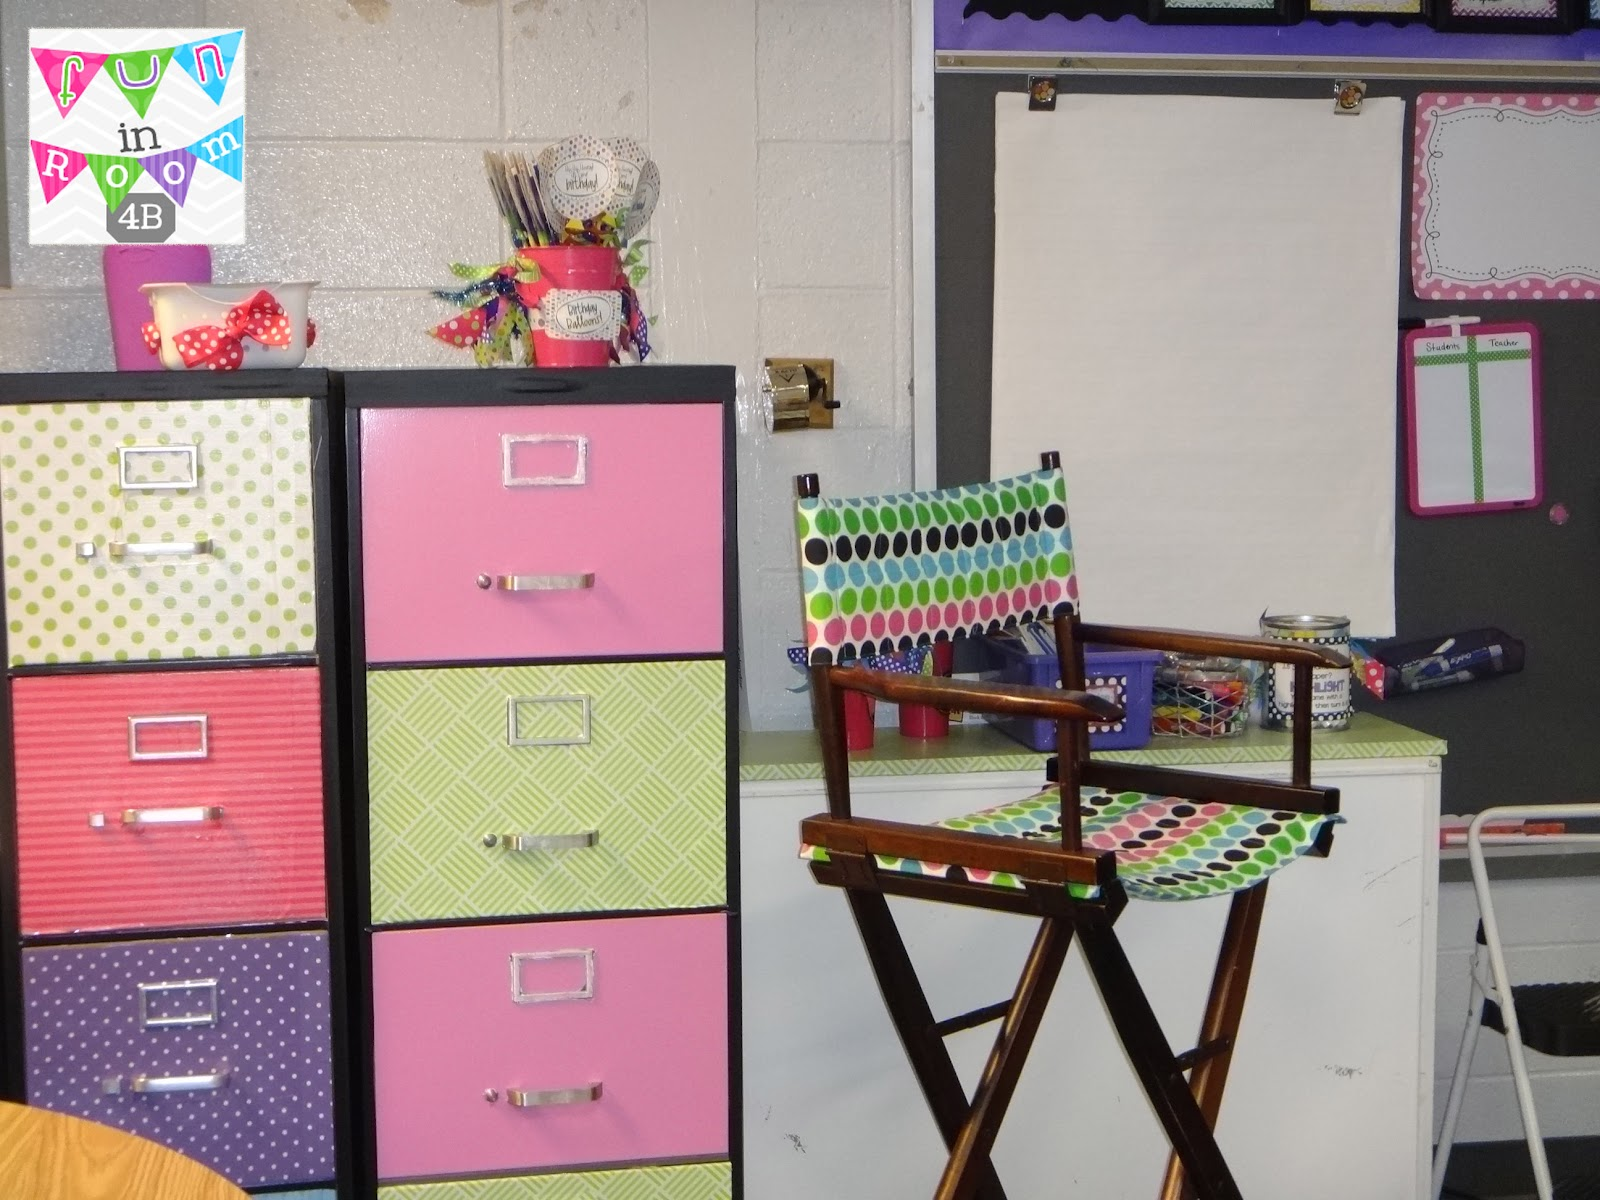 Classroom Cabinet Design : Classroom door reveal fun in room b